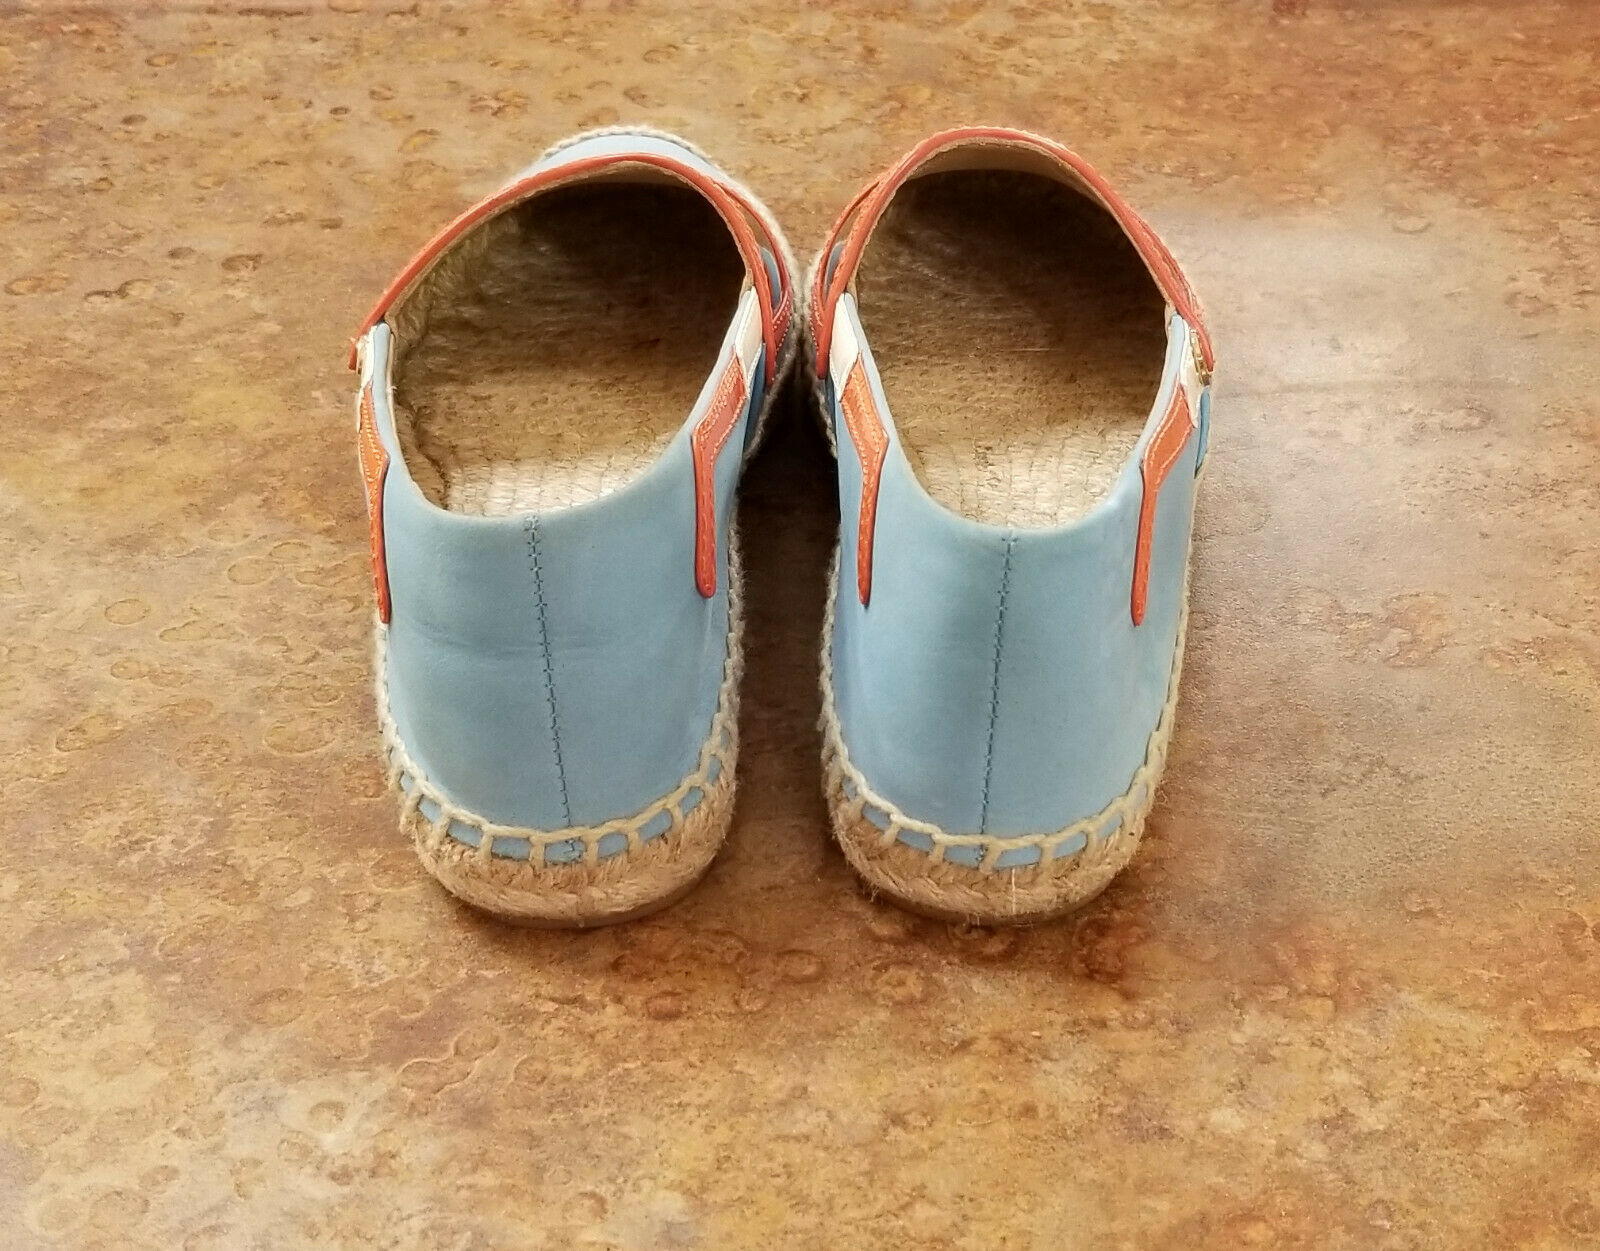 New  Tory Burch 'Sunny' bluee orange orange orange Leather Espadrille Flats 6.5 M MSRP  195 d34cda